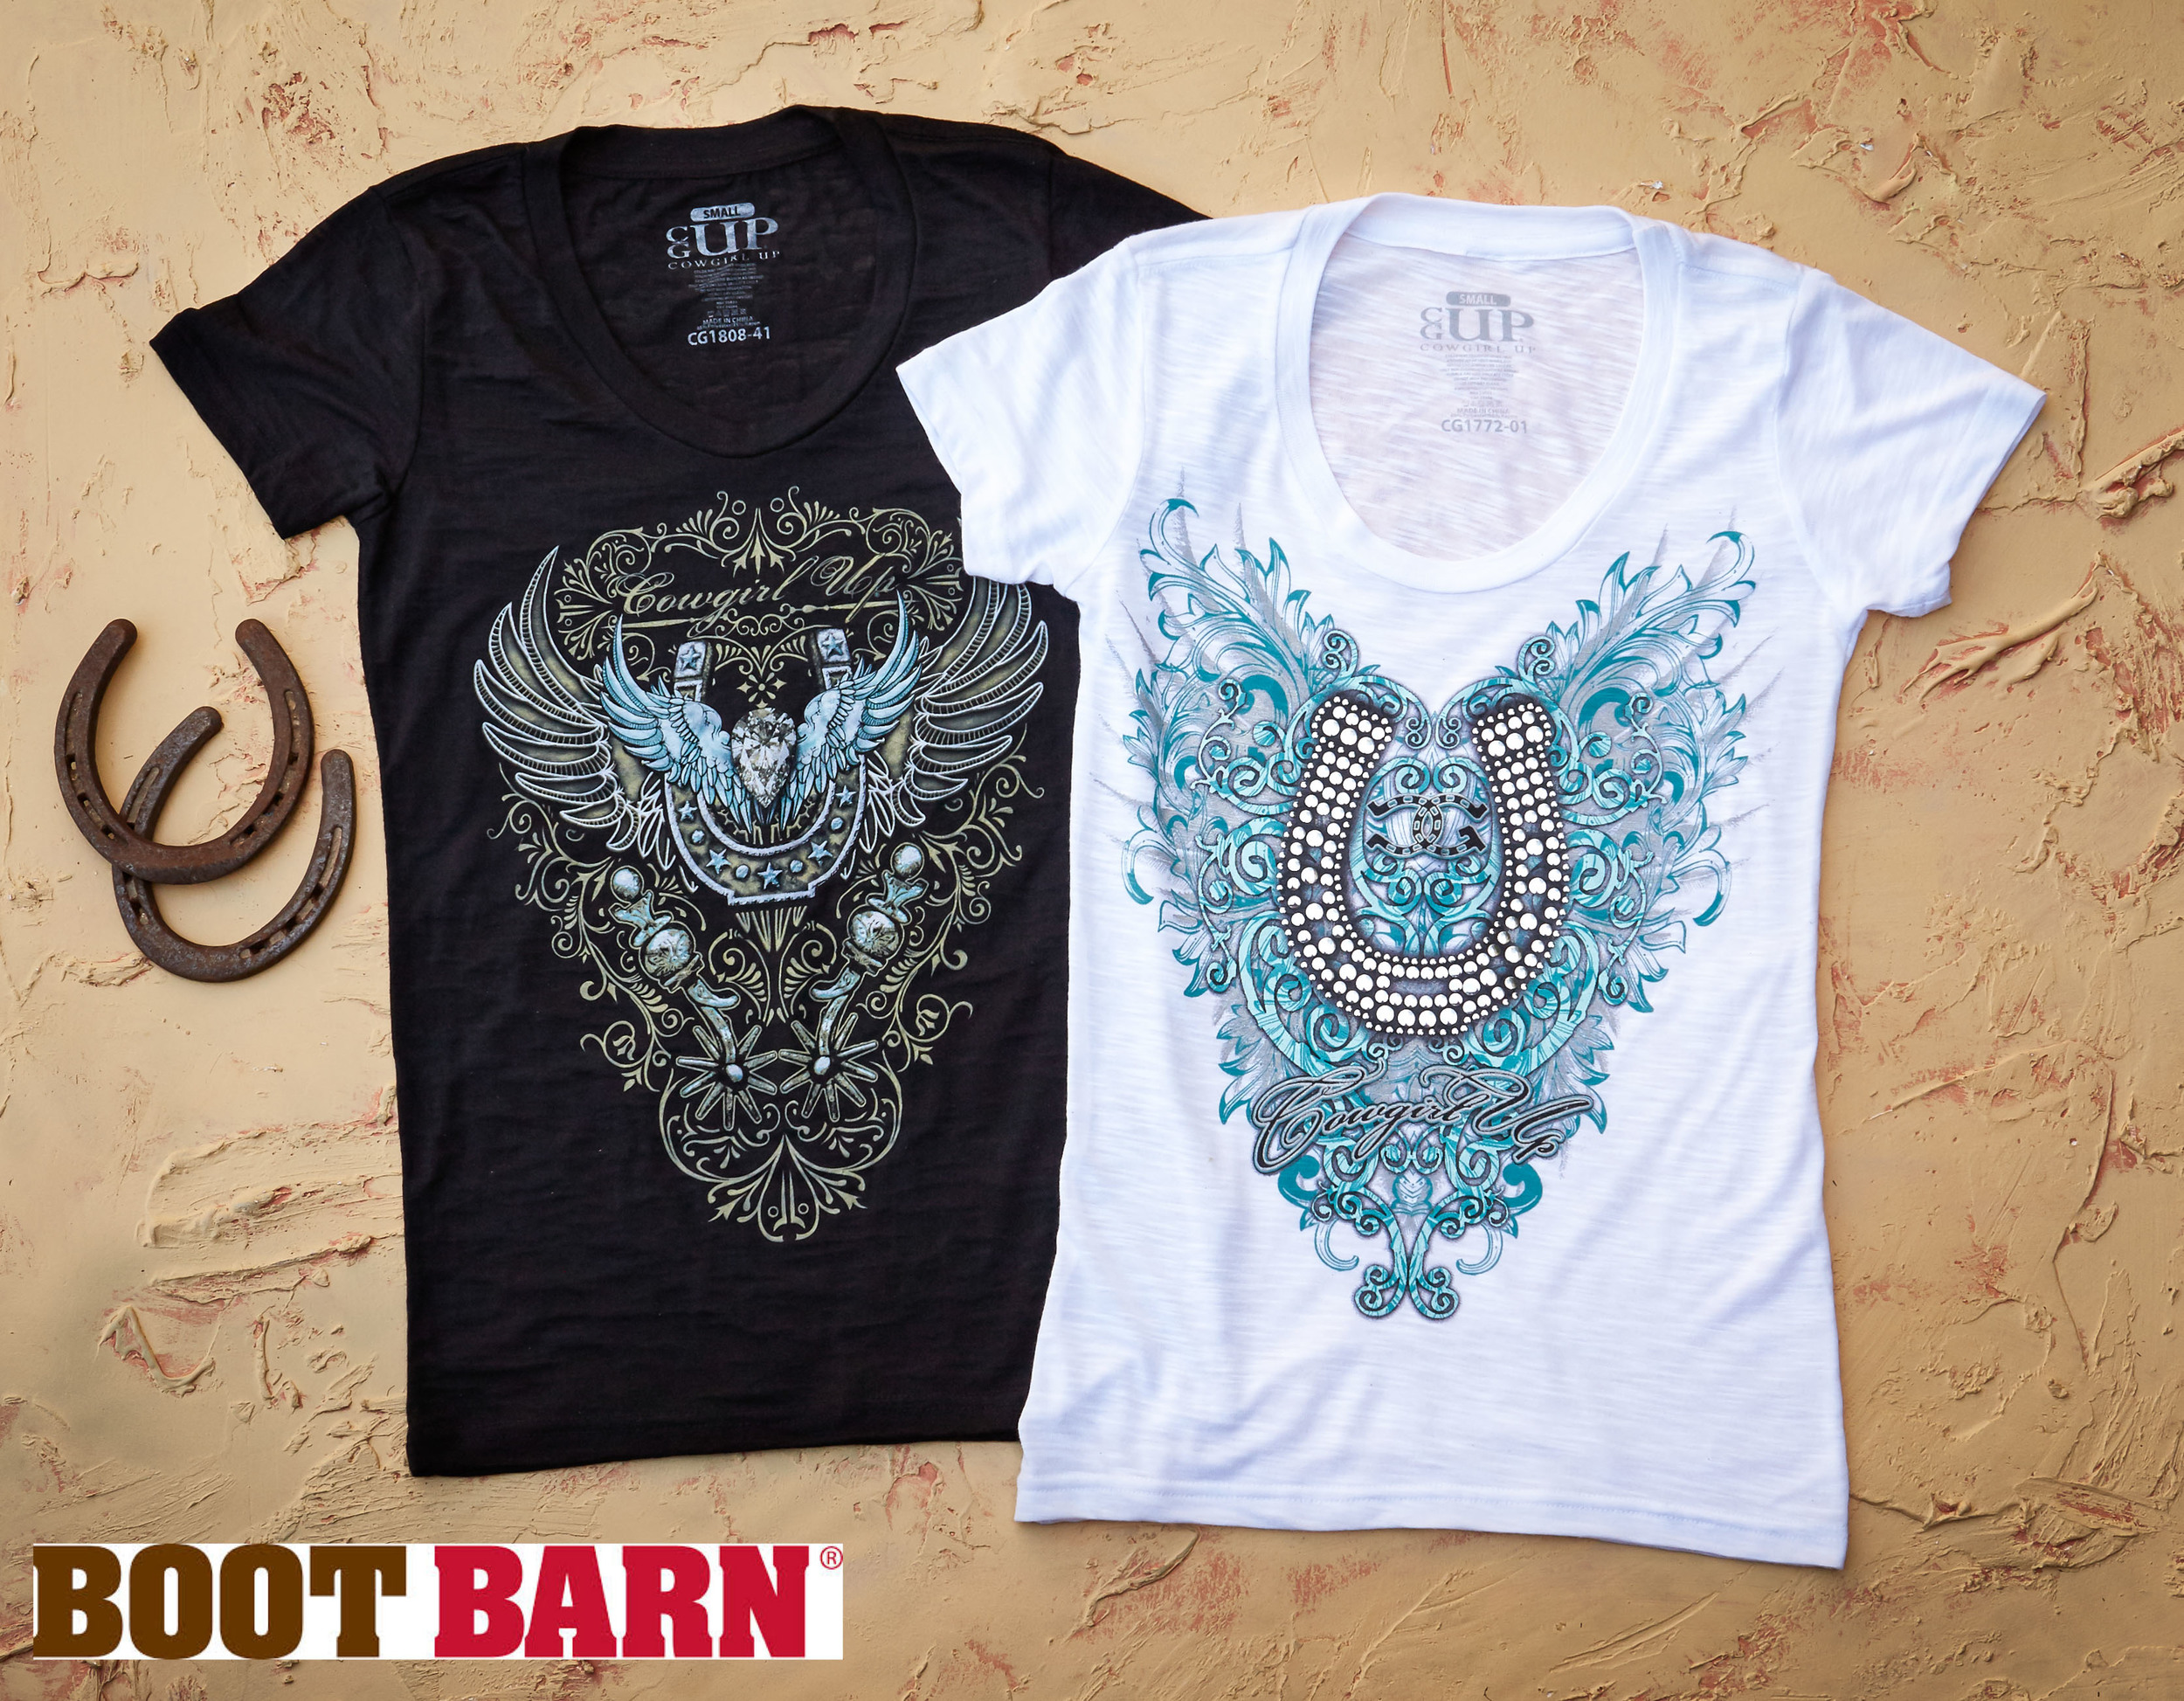 Products with bootbarn logo-0230.jpg